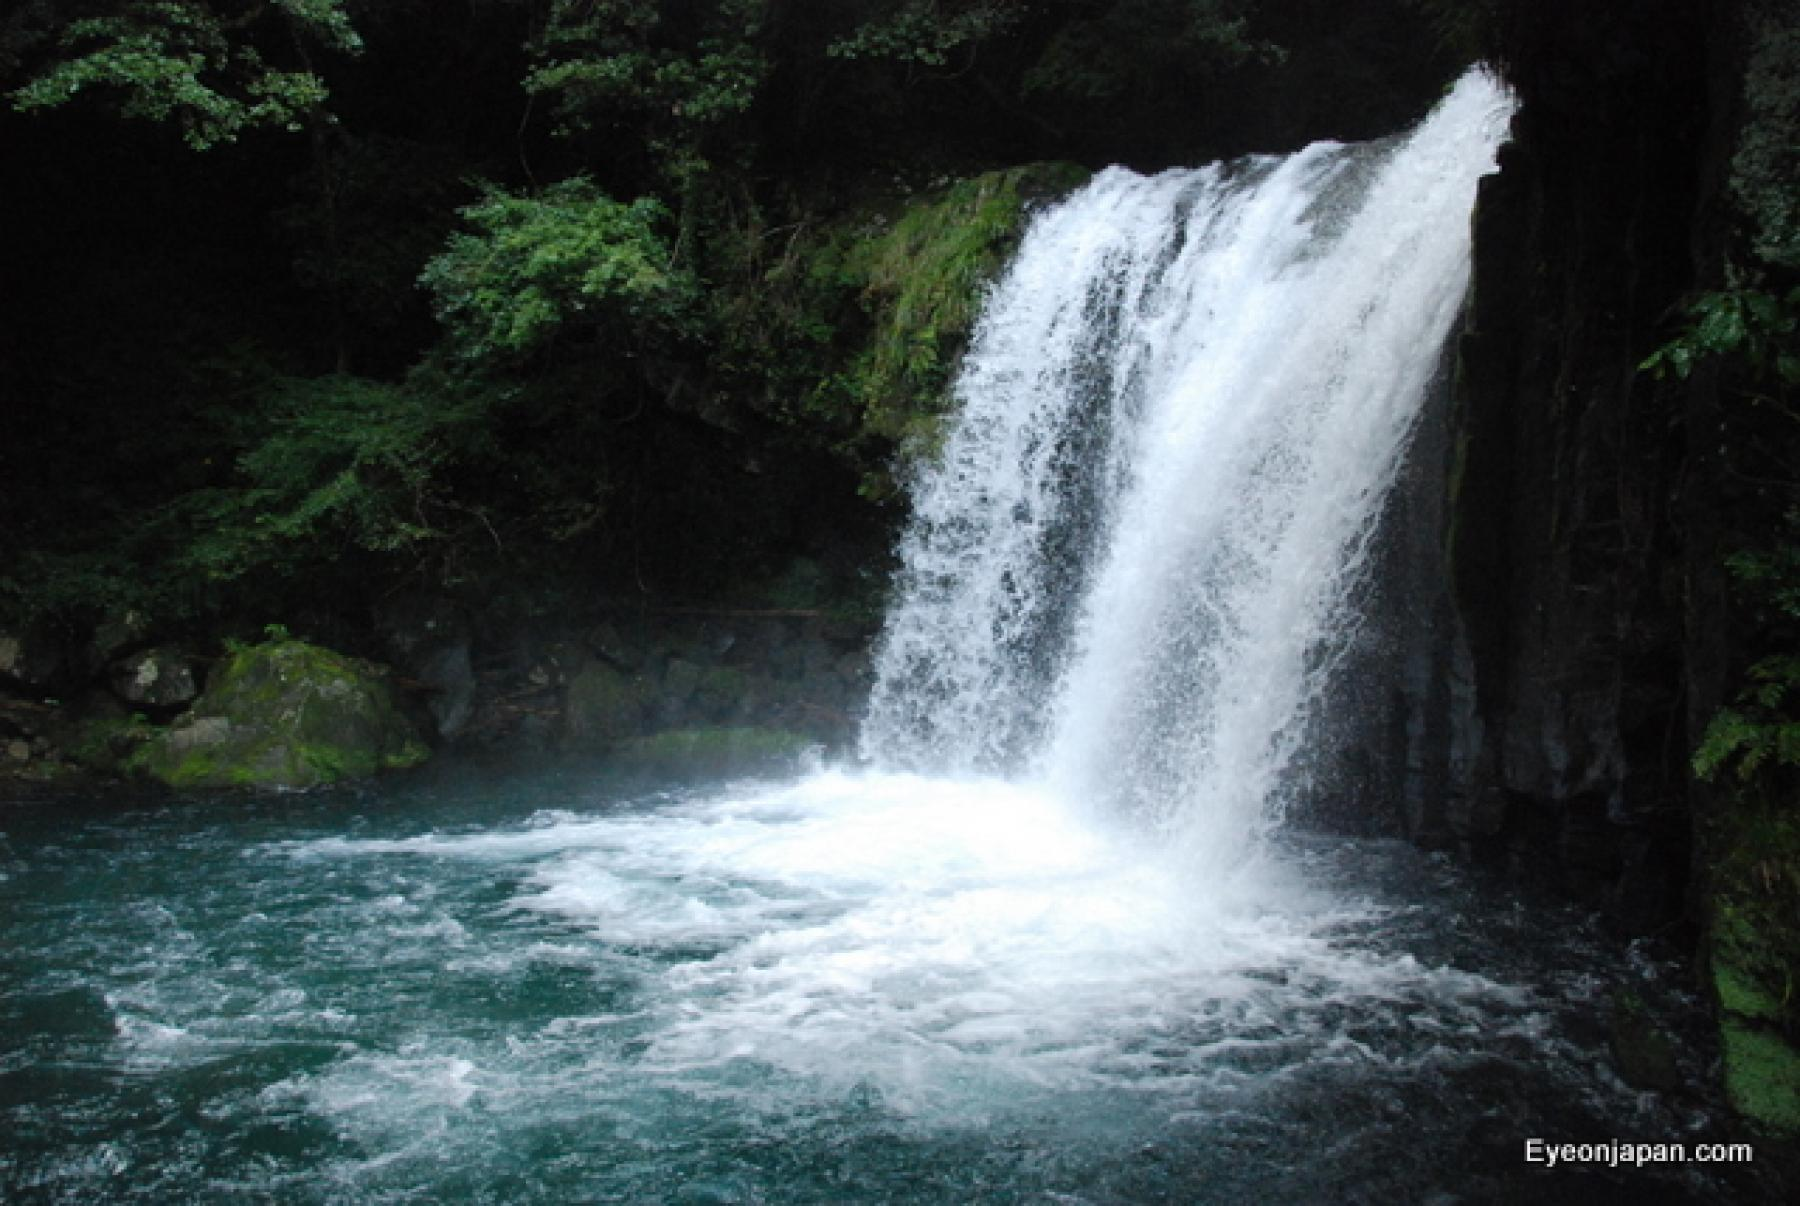 Let's hike the Izu Geopark and waterfalls starting at Tokyo, Japan